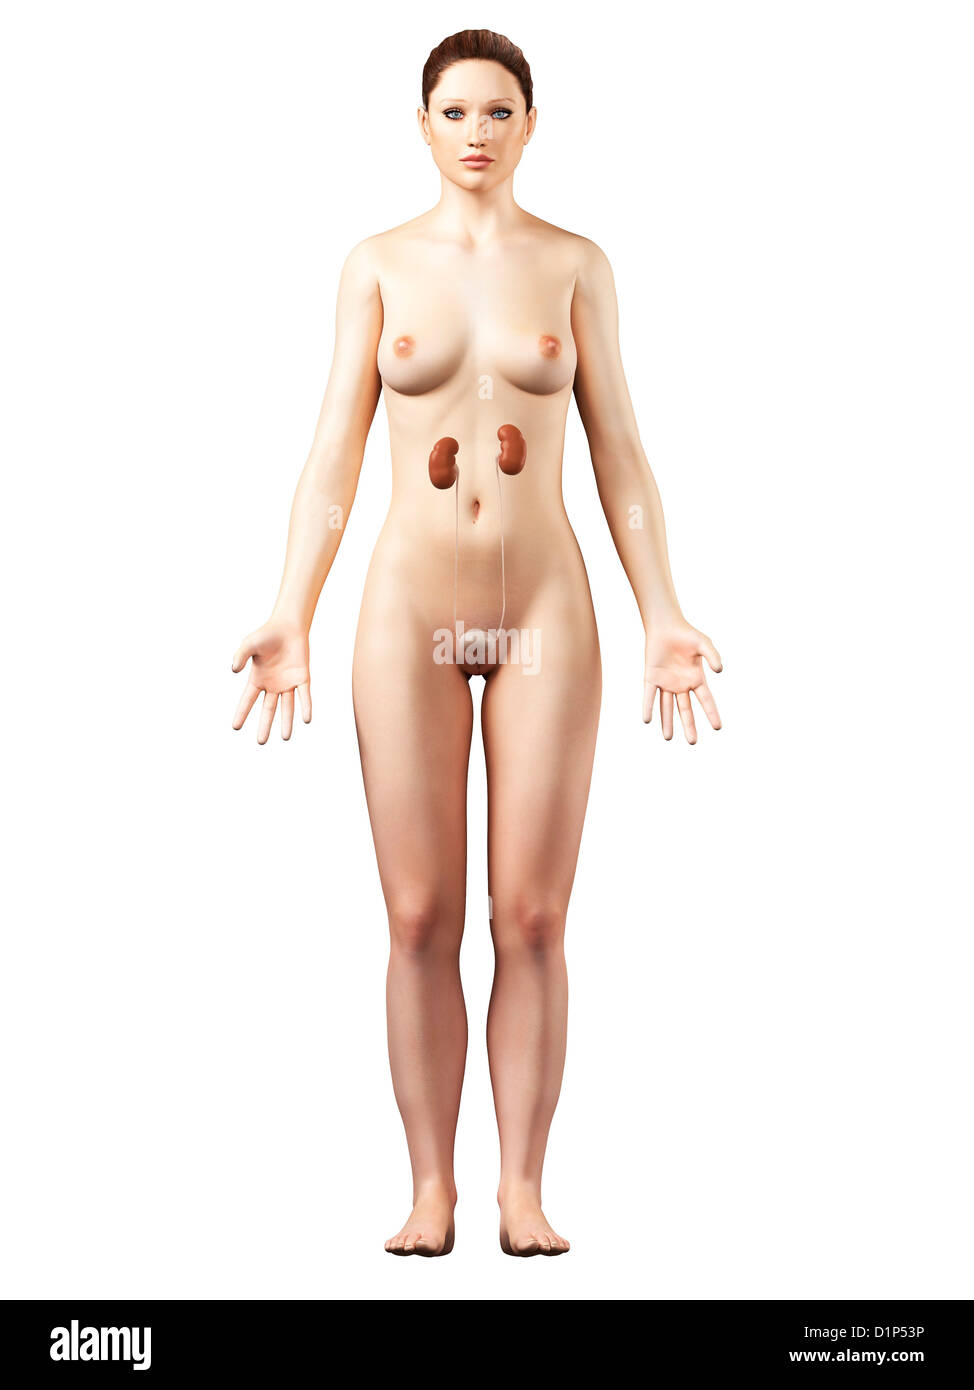 Female urinary system, artwork - Stock Image